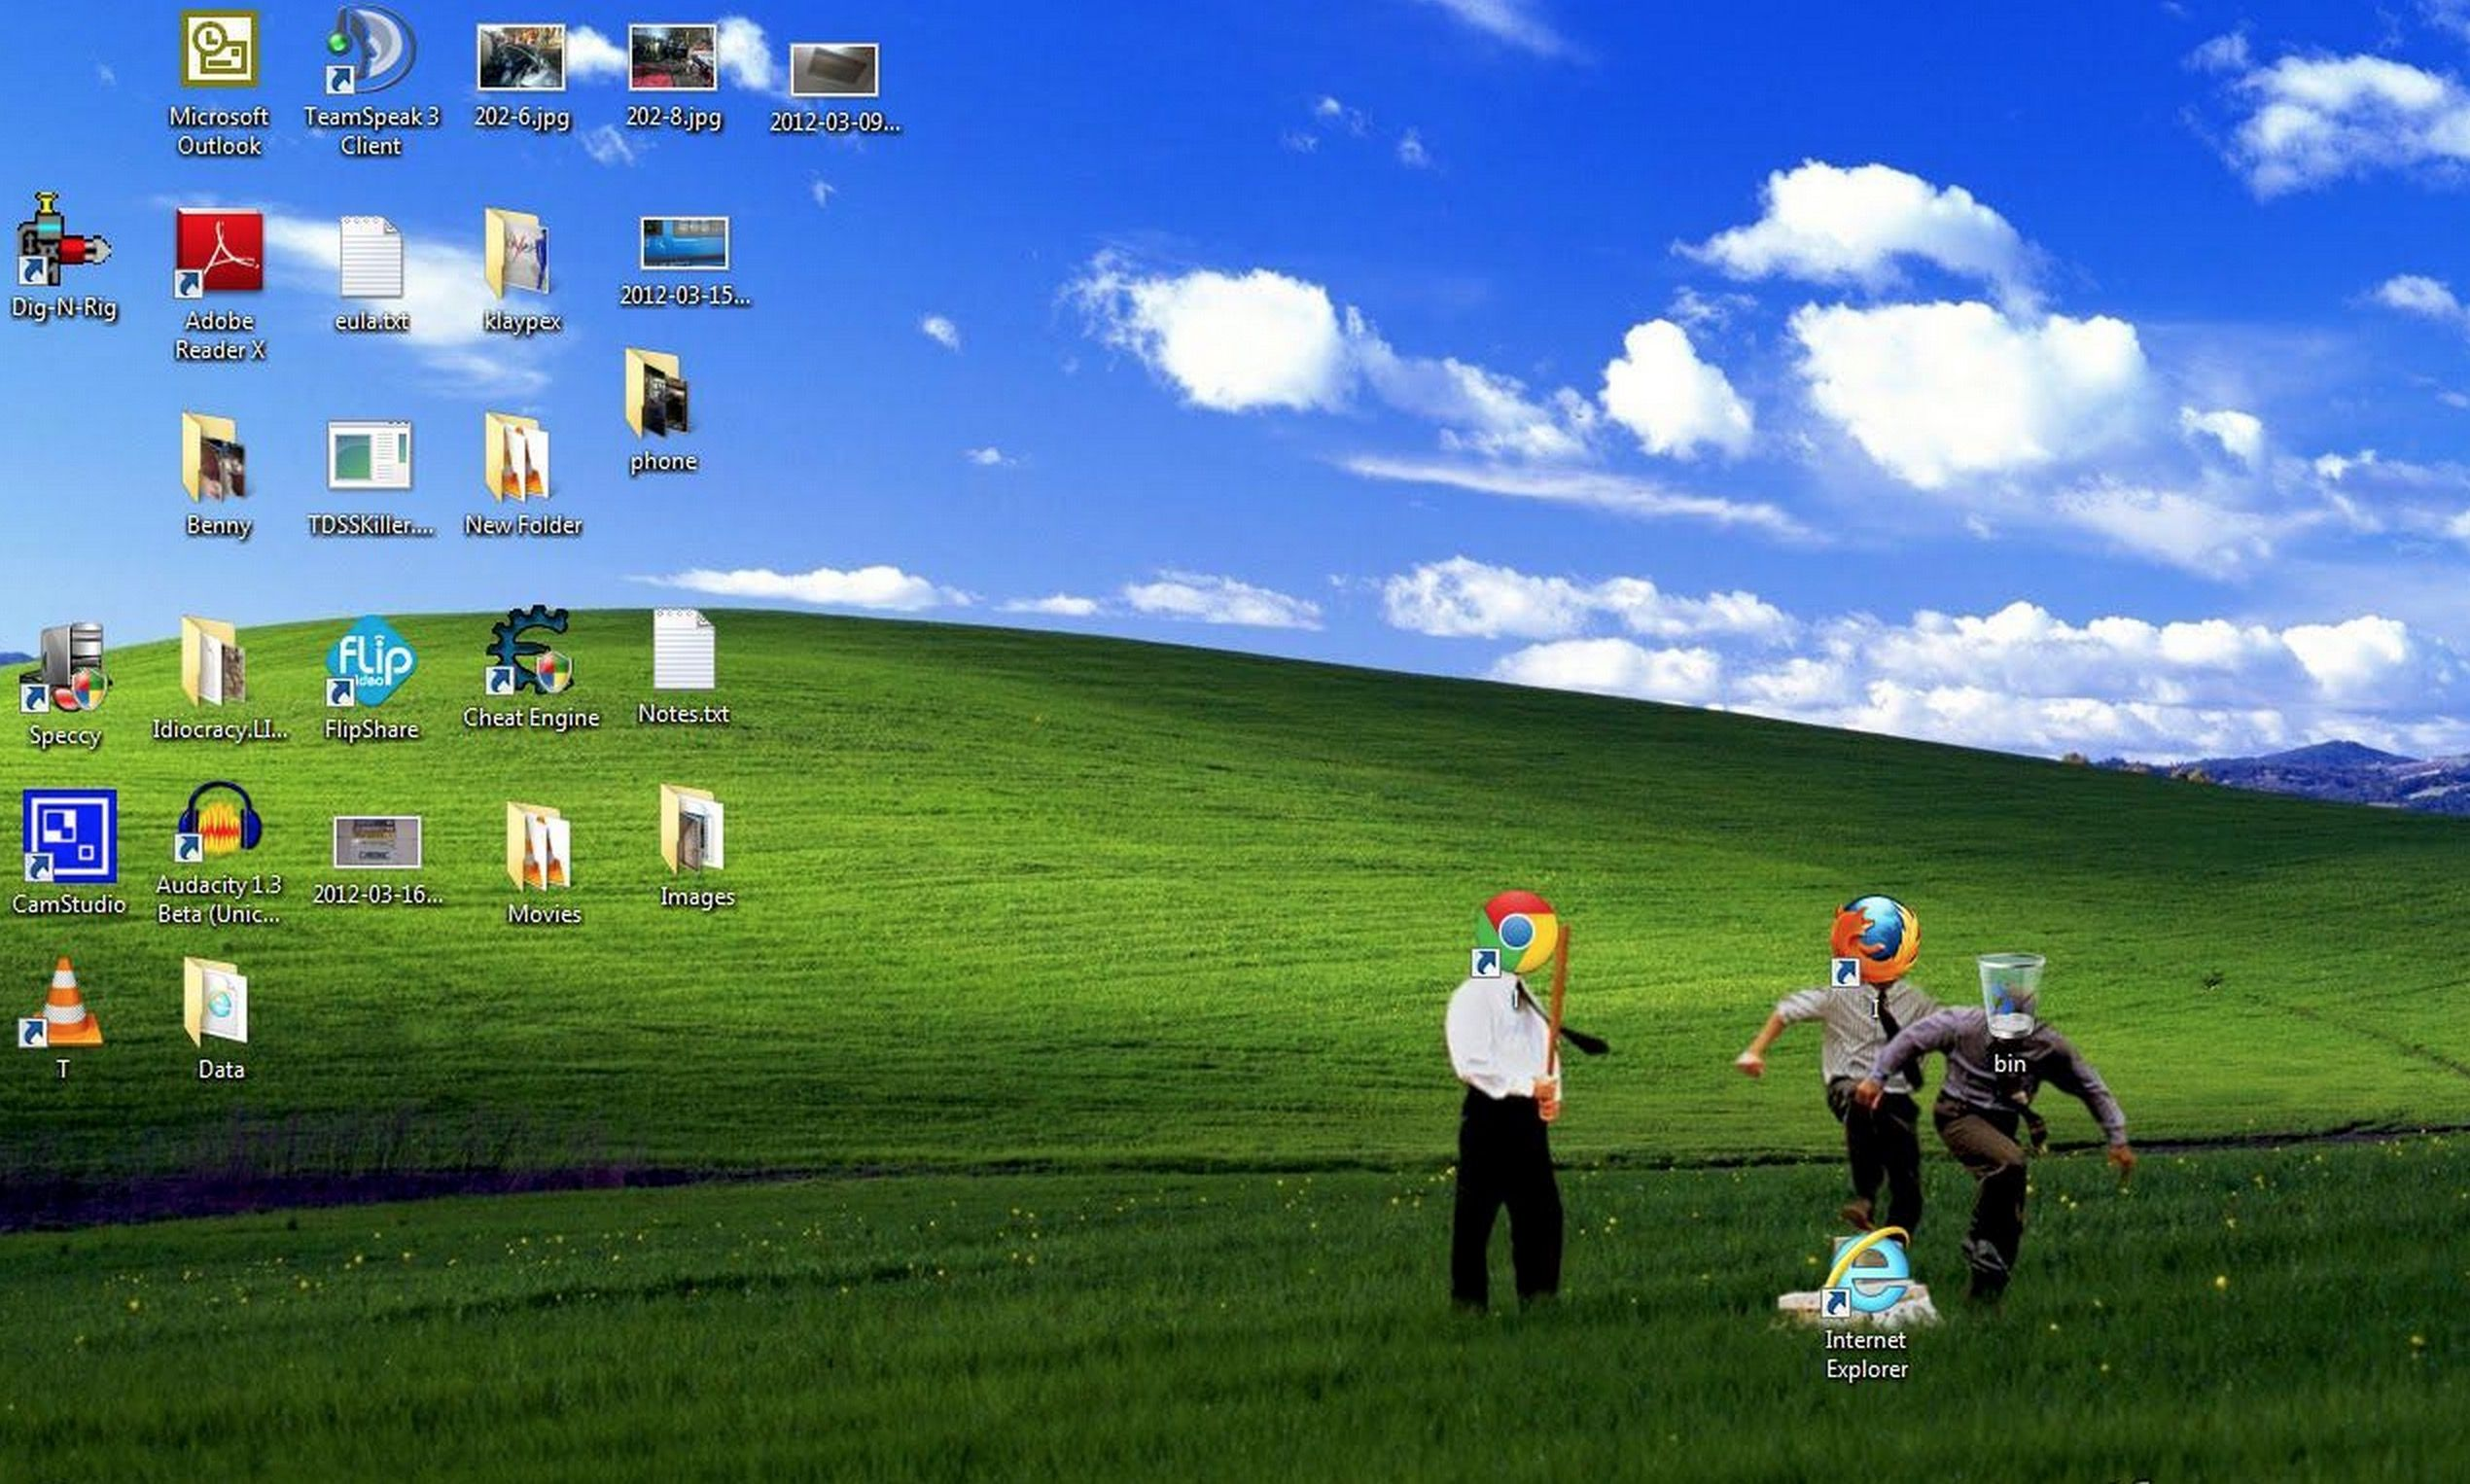 Windows Xp Default Desktop Wallpaper Windows Wallpaper Windows Xp Backgrounds Desktop